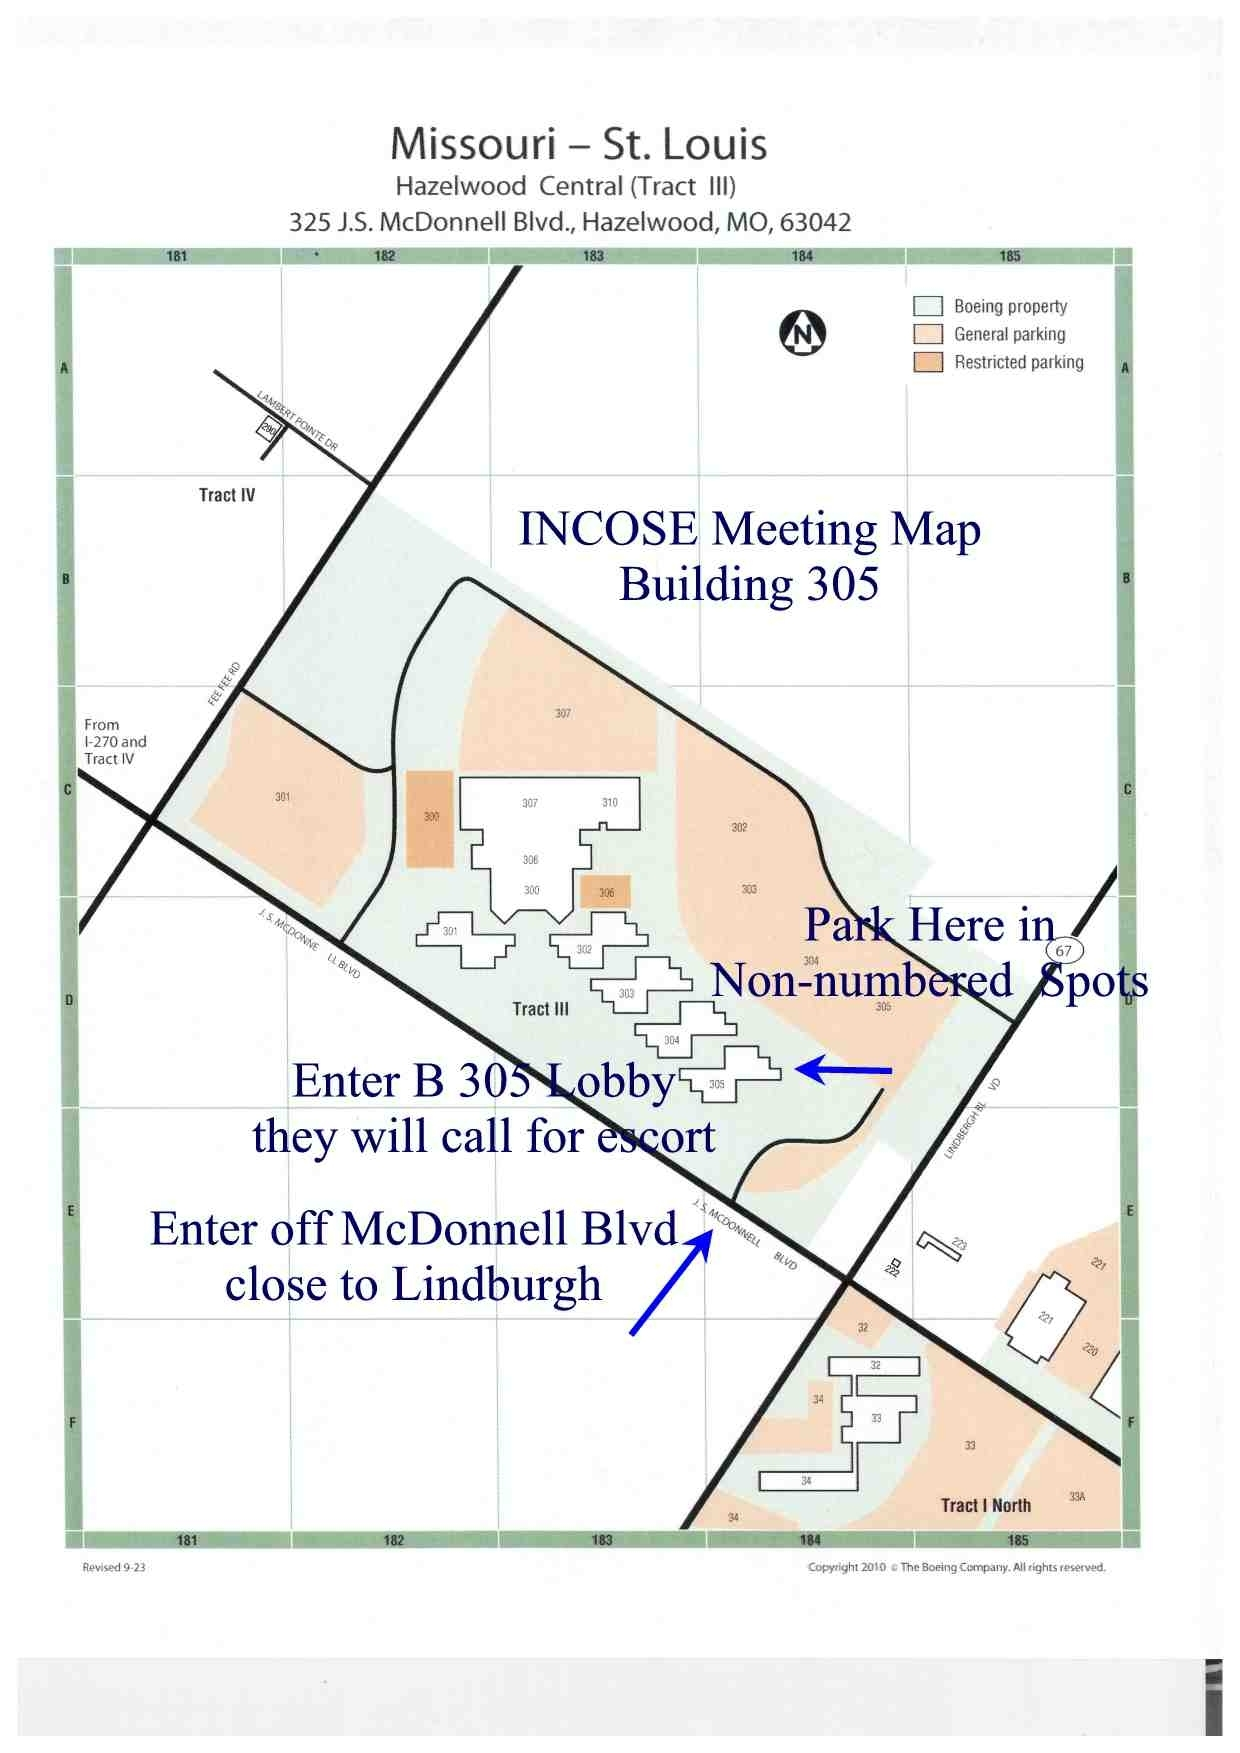 Boeing St Louis Campus Map   Campus Map intended for Boeing Facility Map